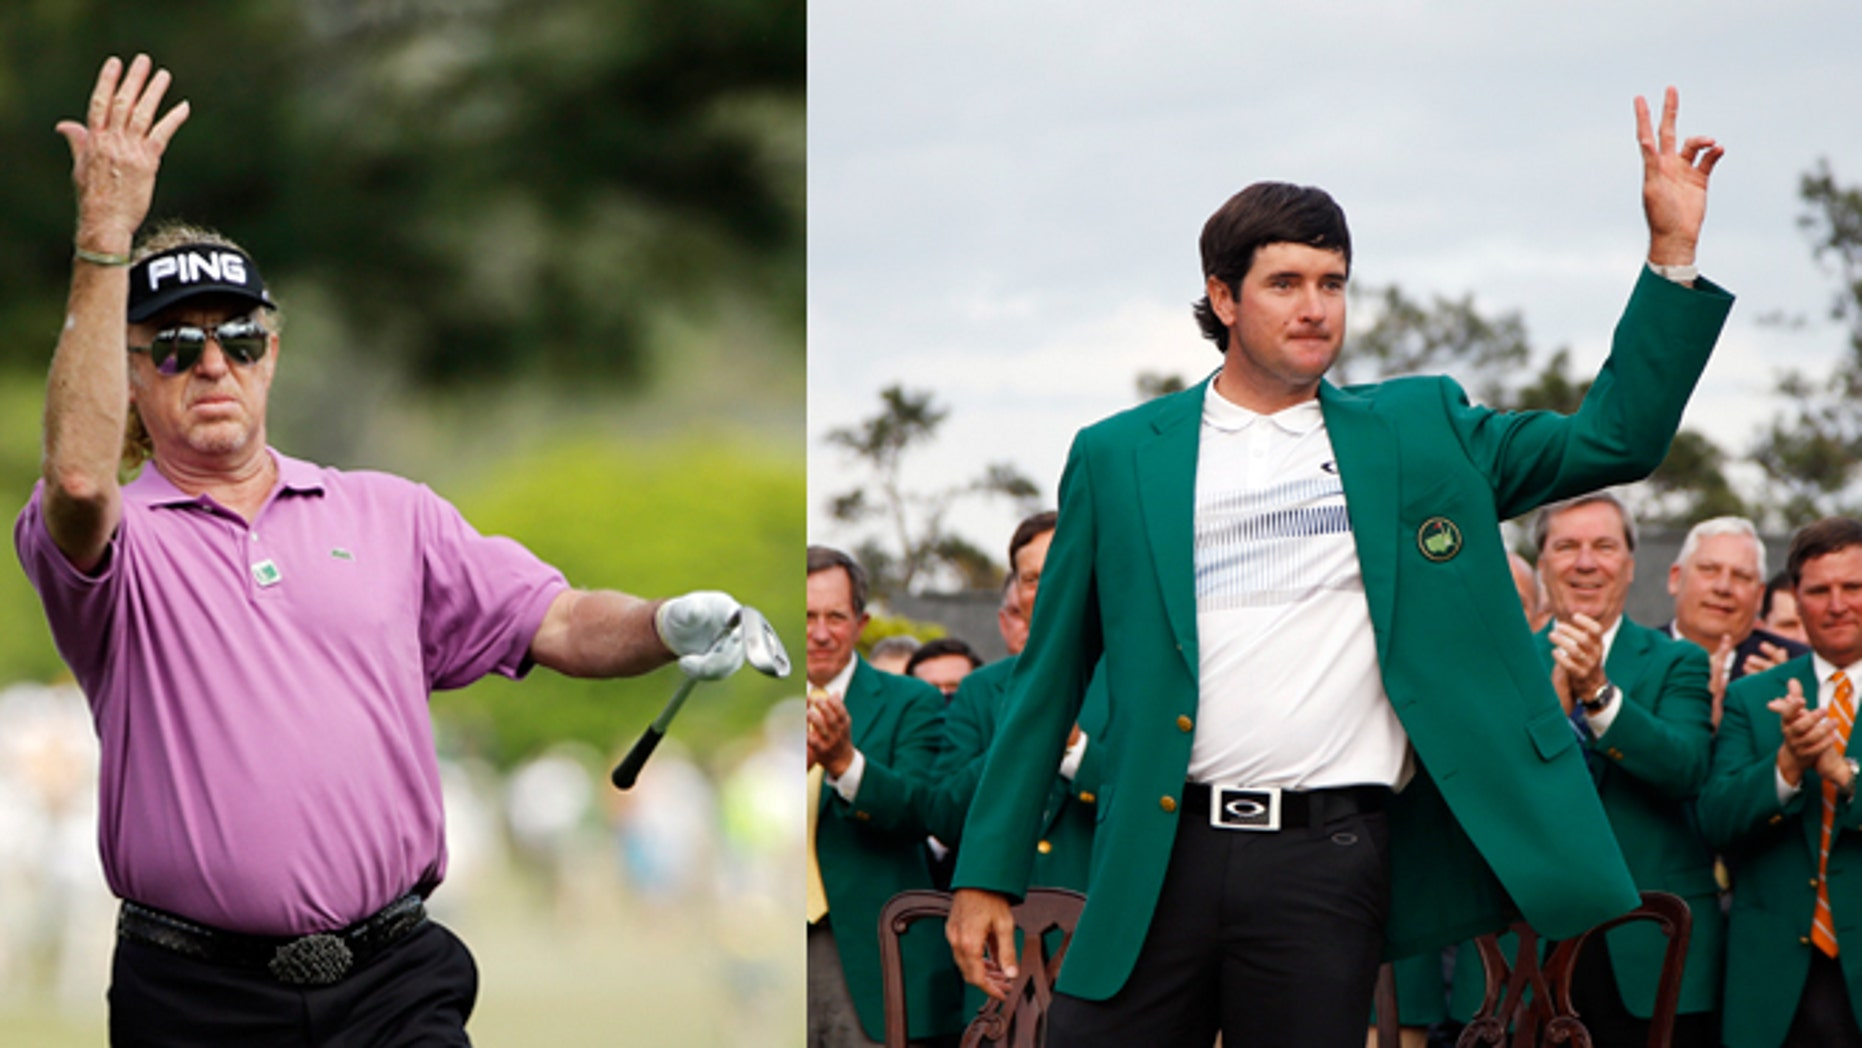 Left: Miguel Angel Jiménez of Spain, with a chance to become the oldest winner of a golf major, urges his ball on during the fourth round of the Masters golf tournament Sunday in Augusta, Ga. (AP Photo/David J. Phillip) Right: Bubba Watson waves after being presented with his green jacket for winning the Masters golf tournament Sunday, April 13, 2014. (AP Photo/Matt Slocum)